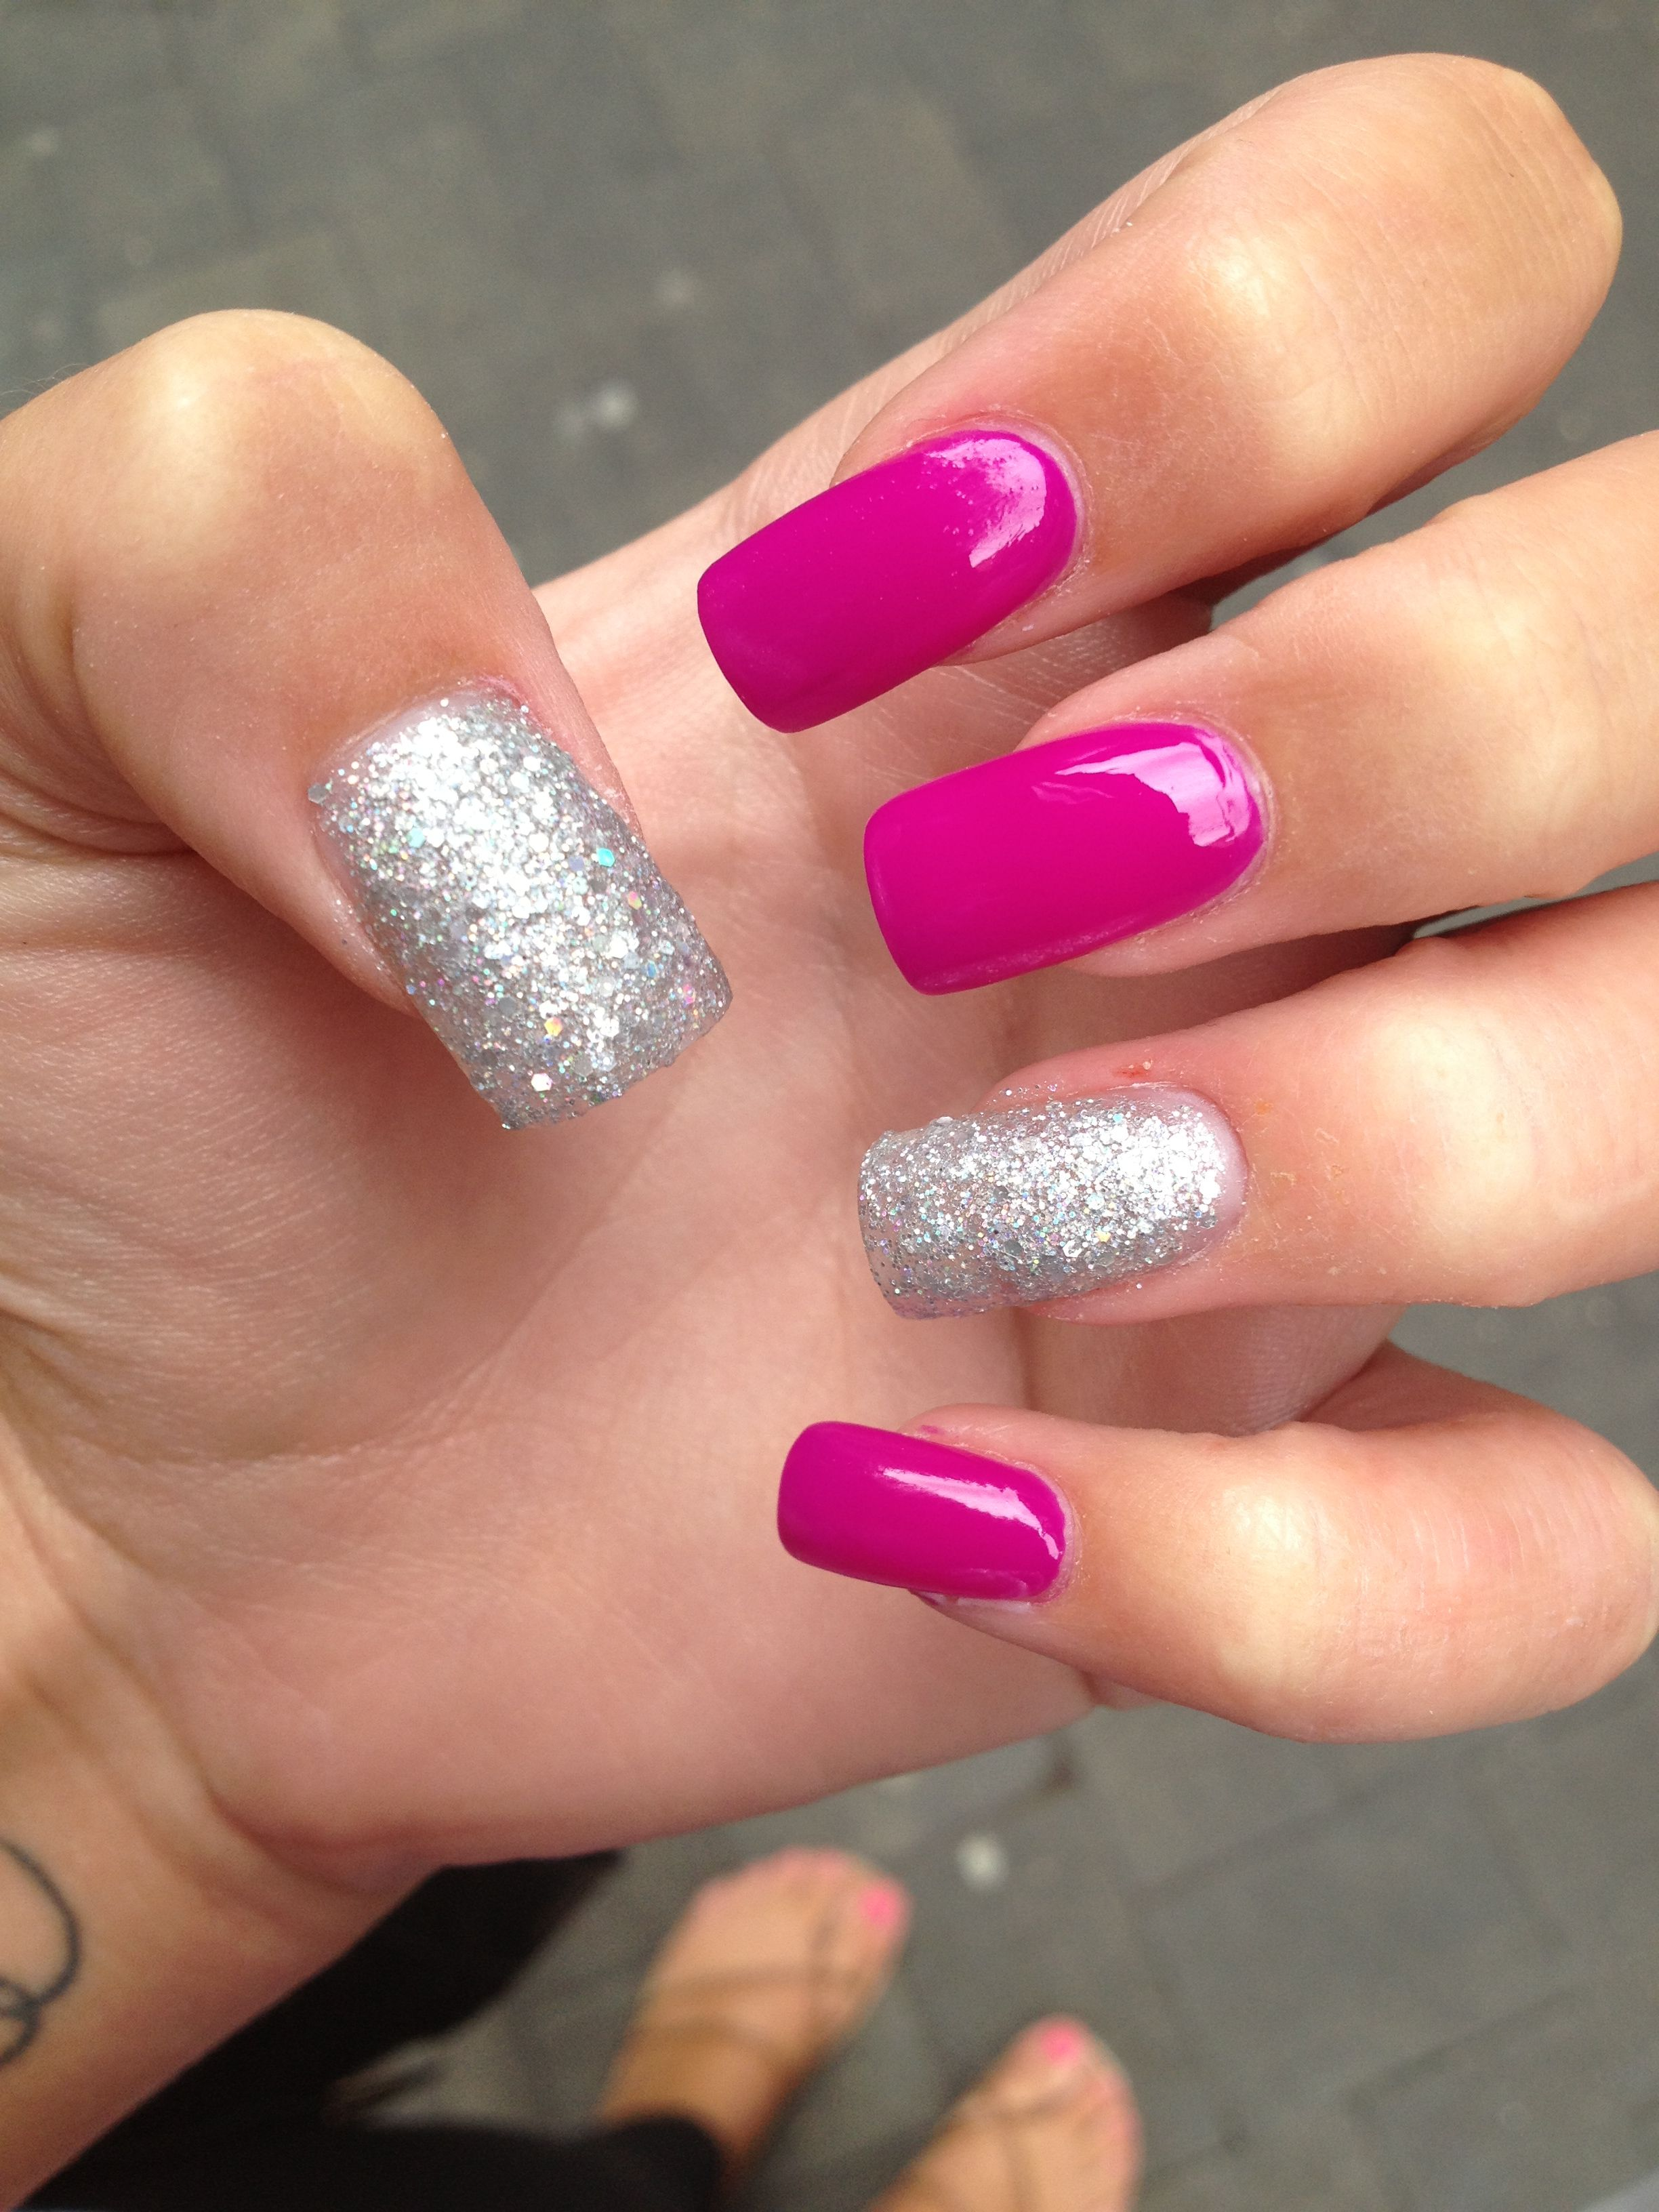 New Acrylic Prom Nail Design | Pinterest | Acrylic nail designs ...